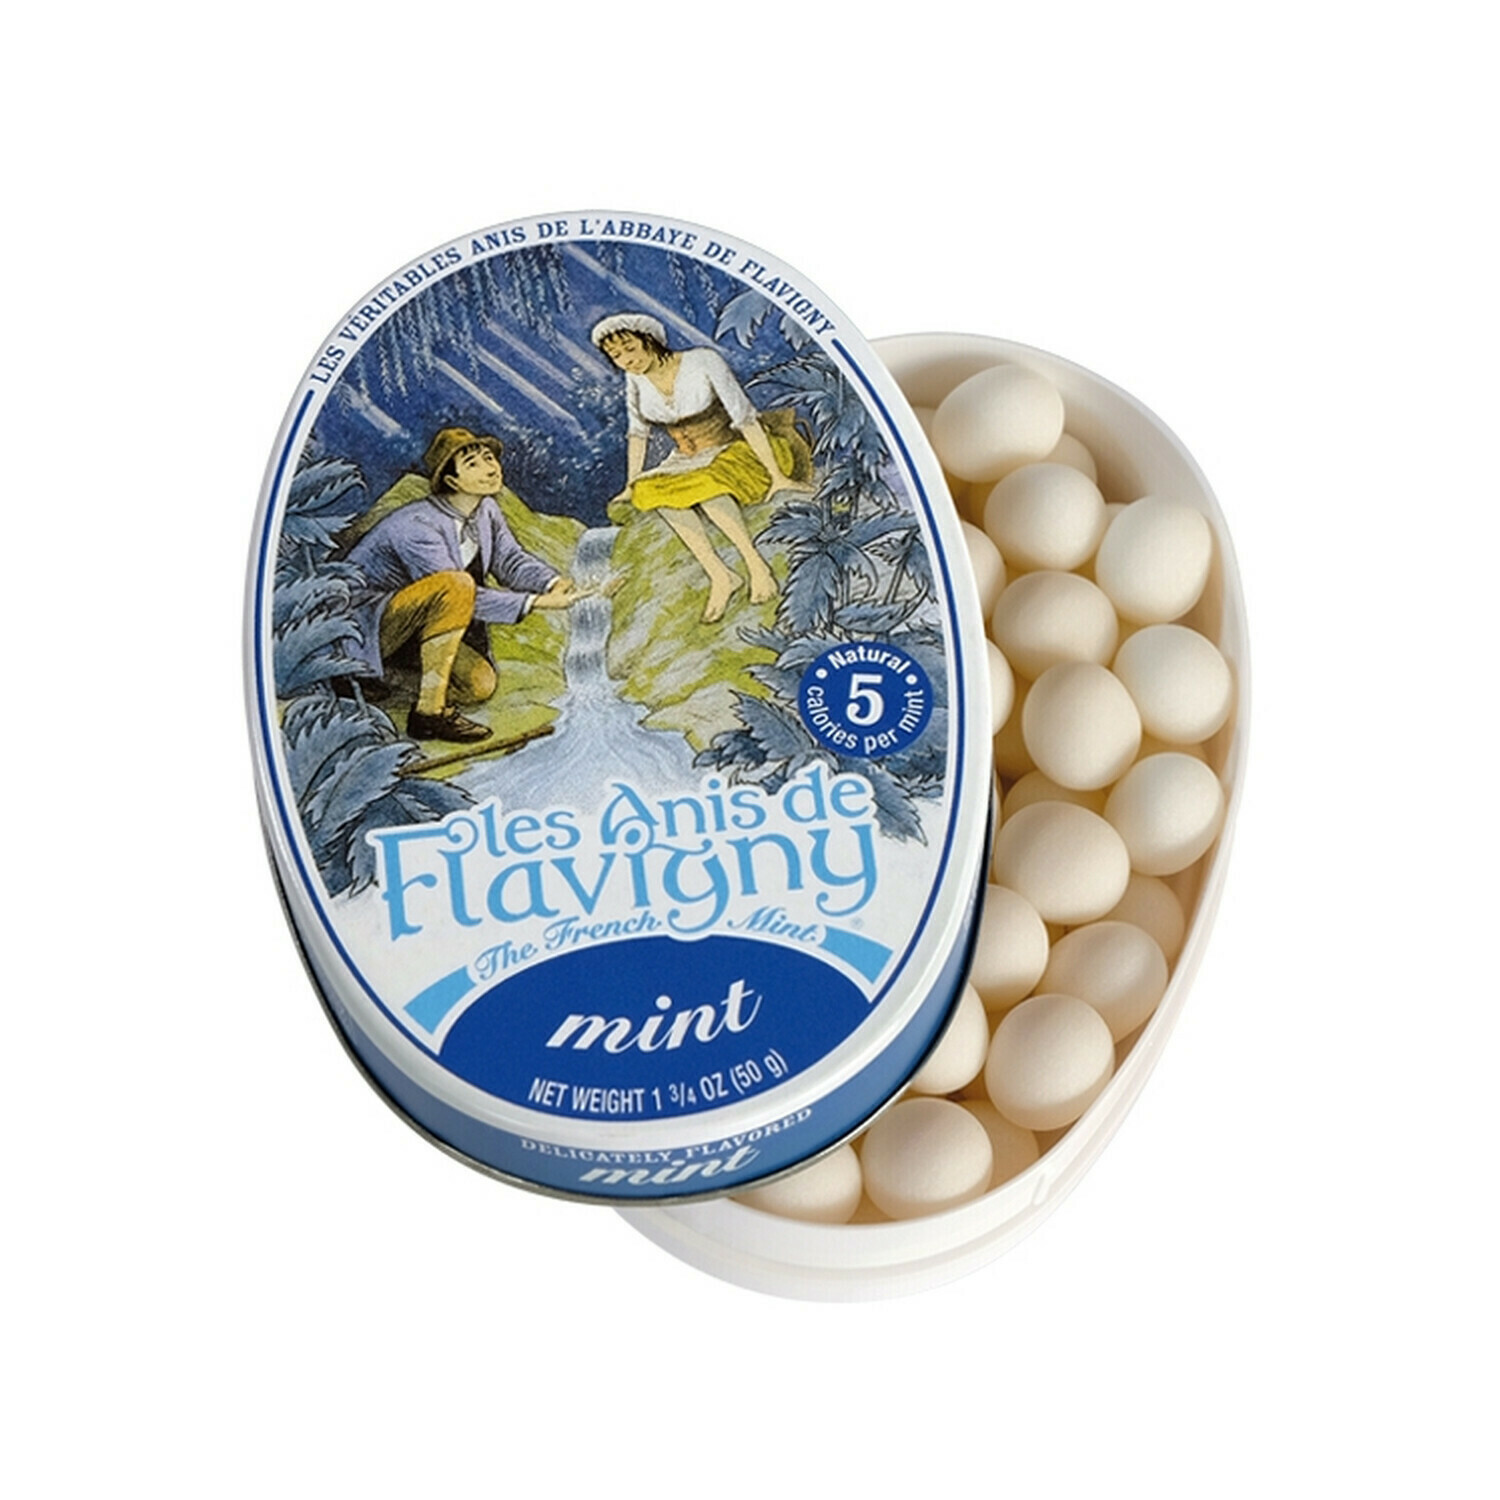 Les Anis de Flavigny Mint Flavored Mints France 1.8oz